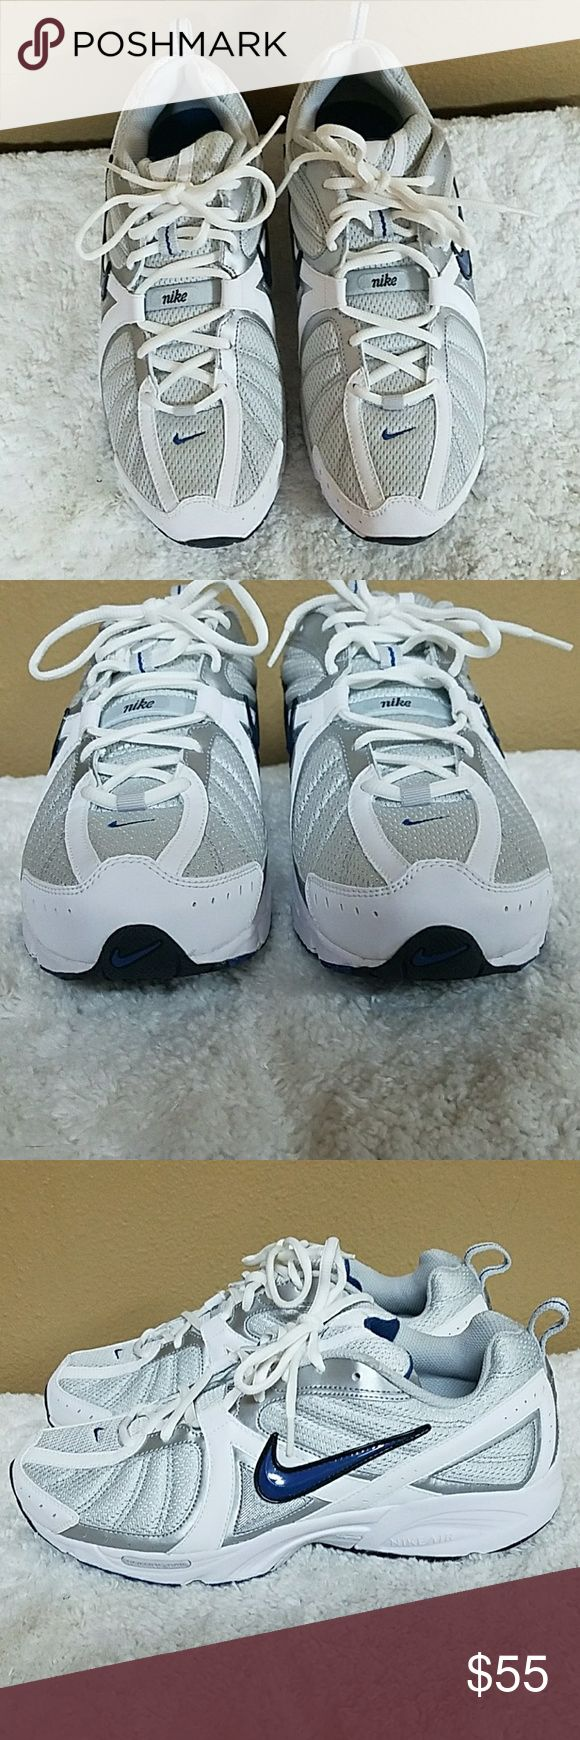 New in box Nike tennis shoes New in box men's NIKE shoes. Style is Air Vitality Walk. Color is Neutral Grey/Court Blue - White. Size 9 1/2 Nike Shoes Sneakers